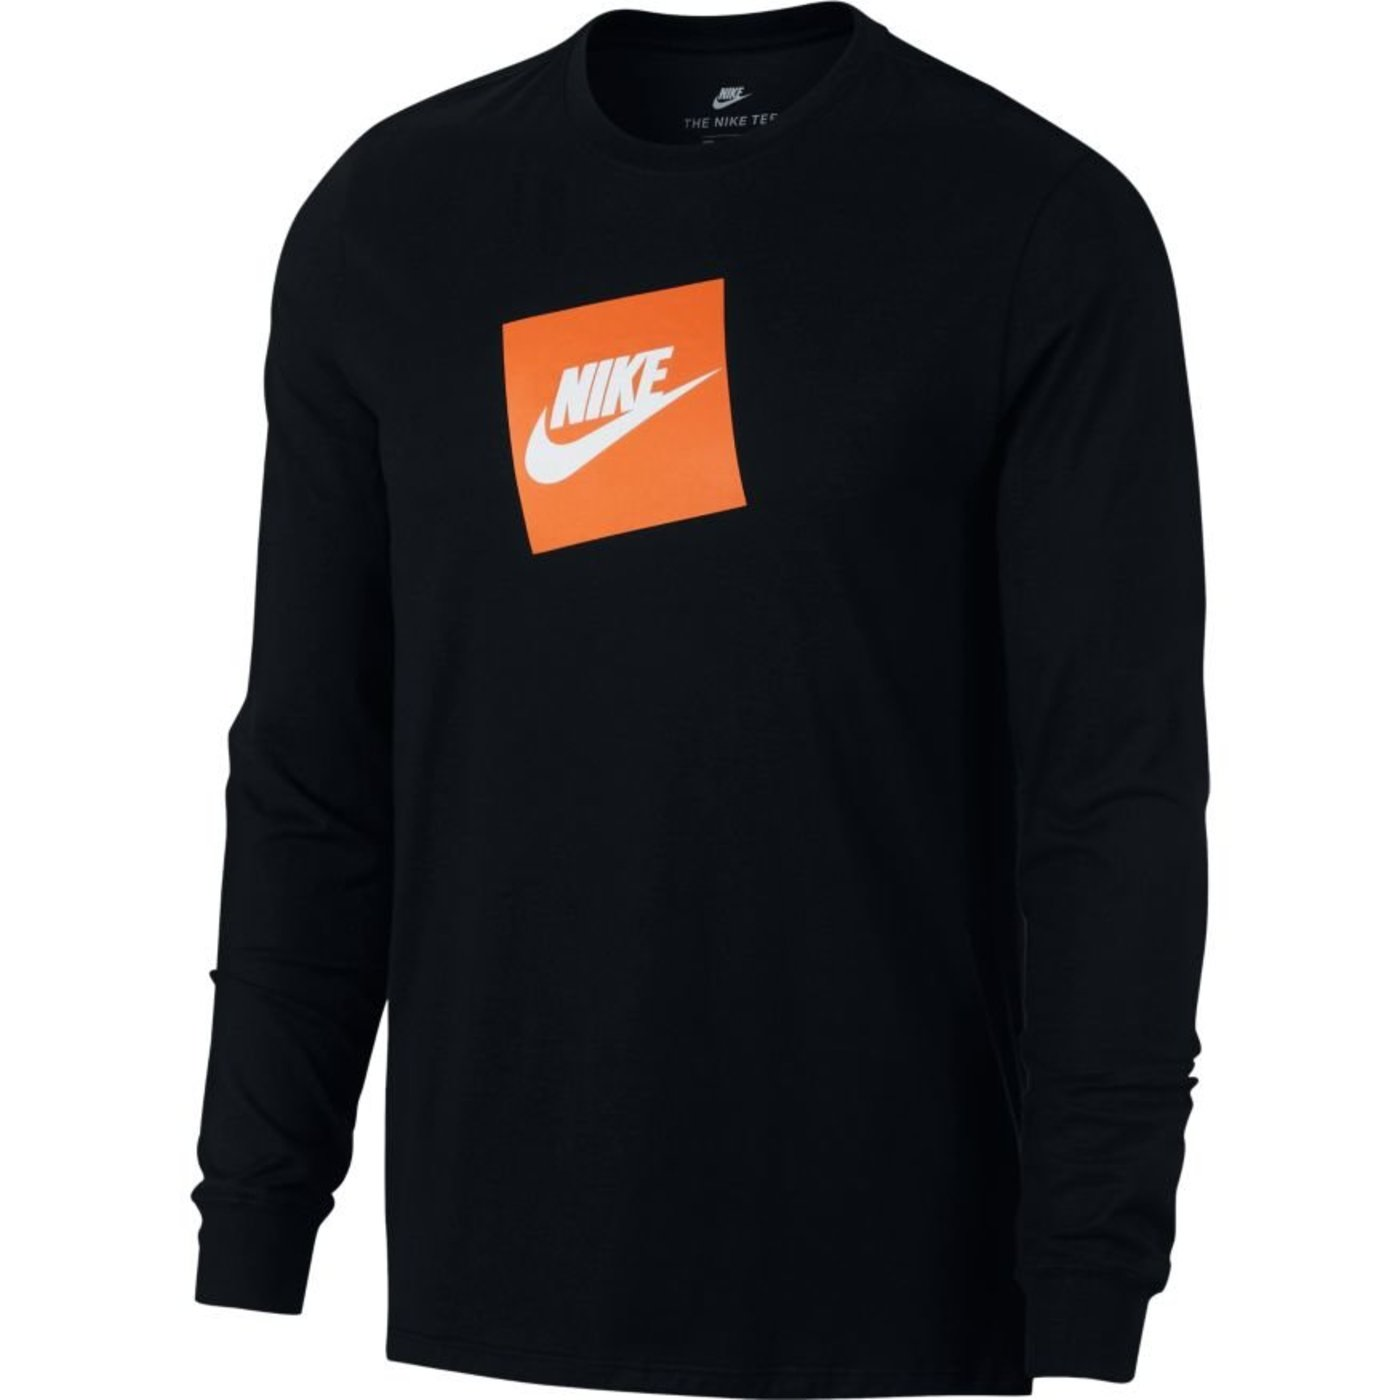 official sneakers new collection Details about Nike Men's Futura Box Logo Long Sleeve T-shirt Black-Orange  AJ3873-010